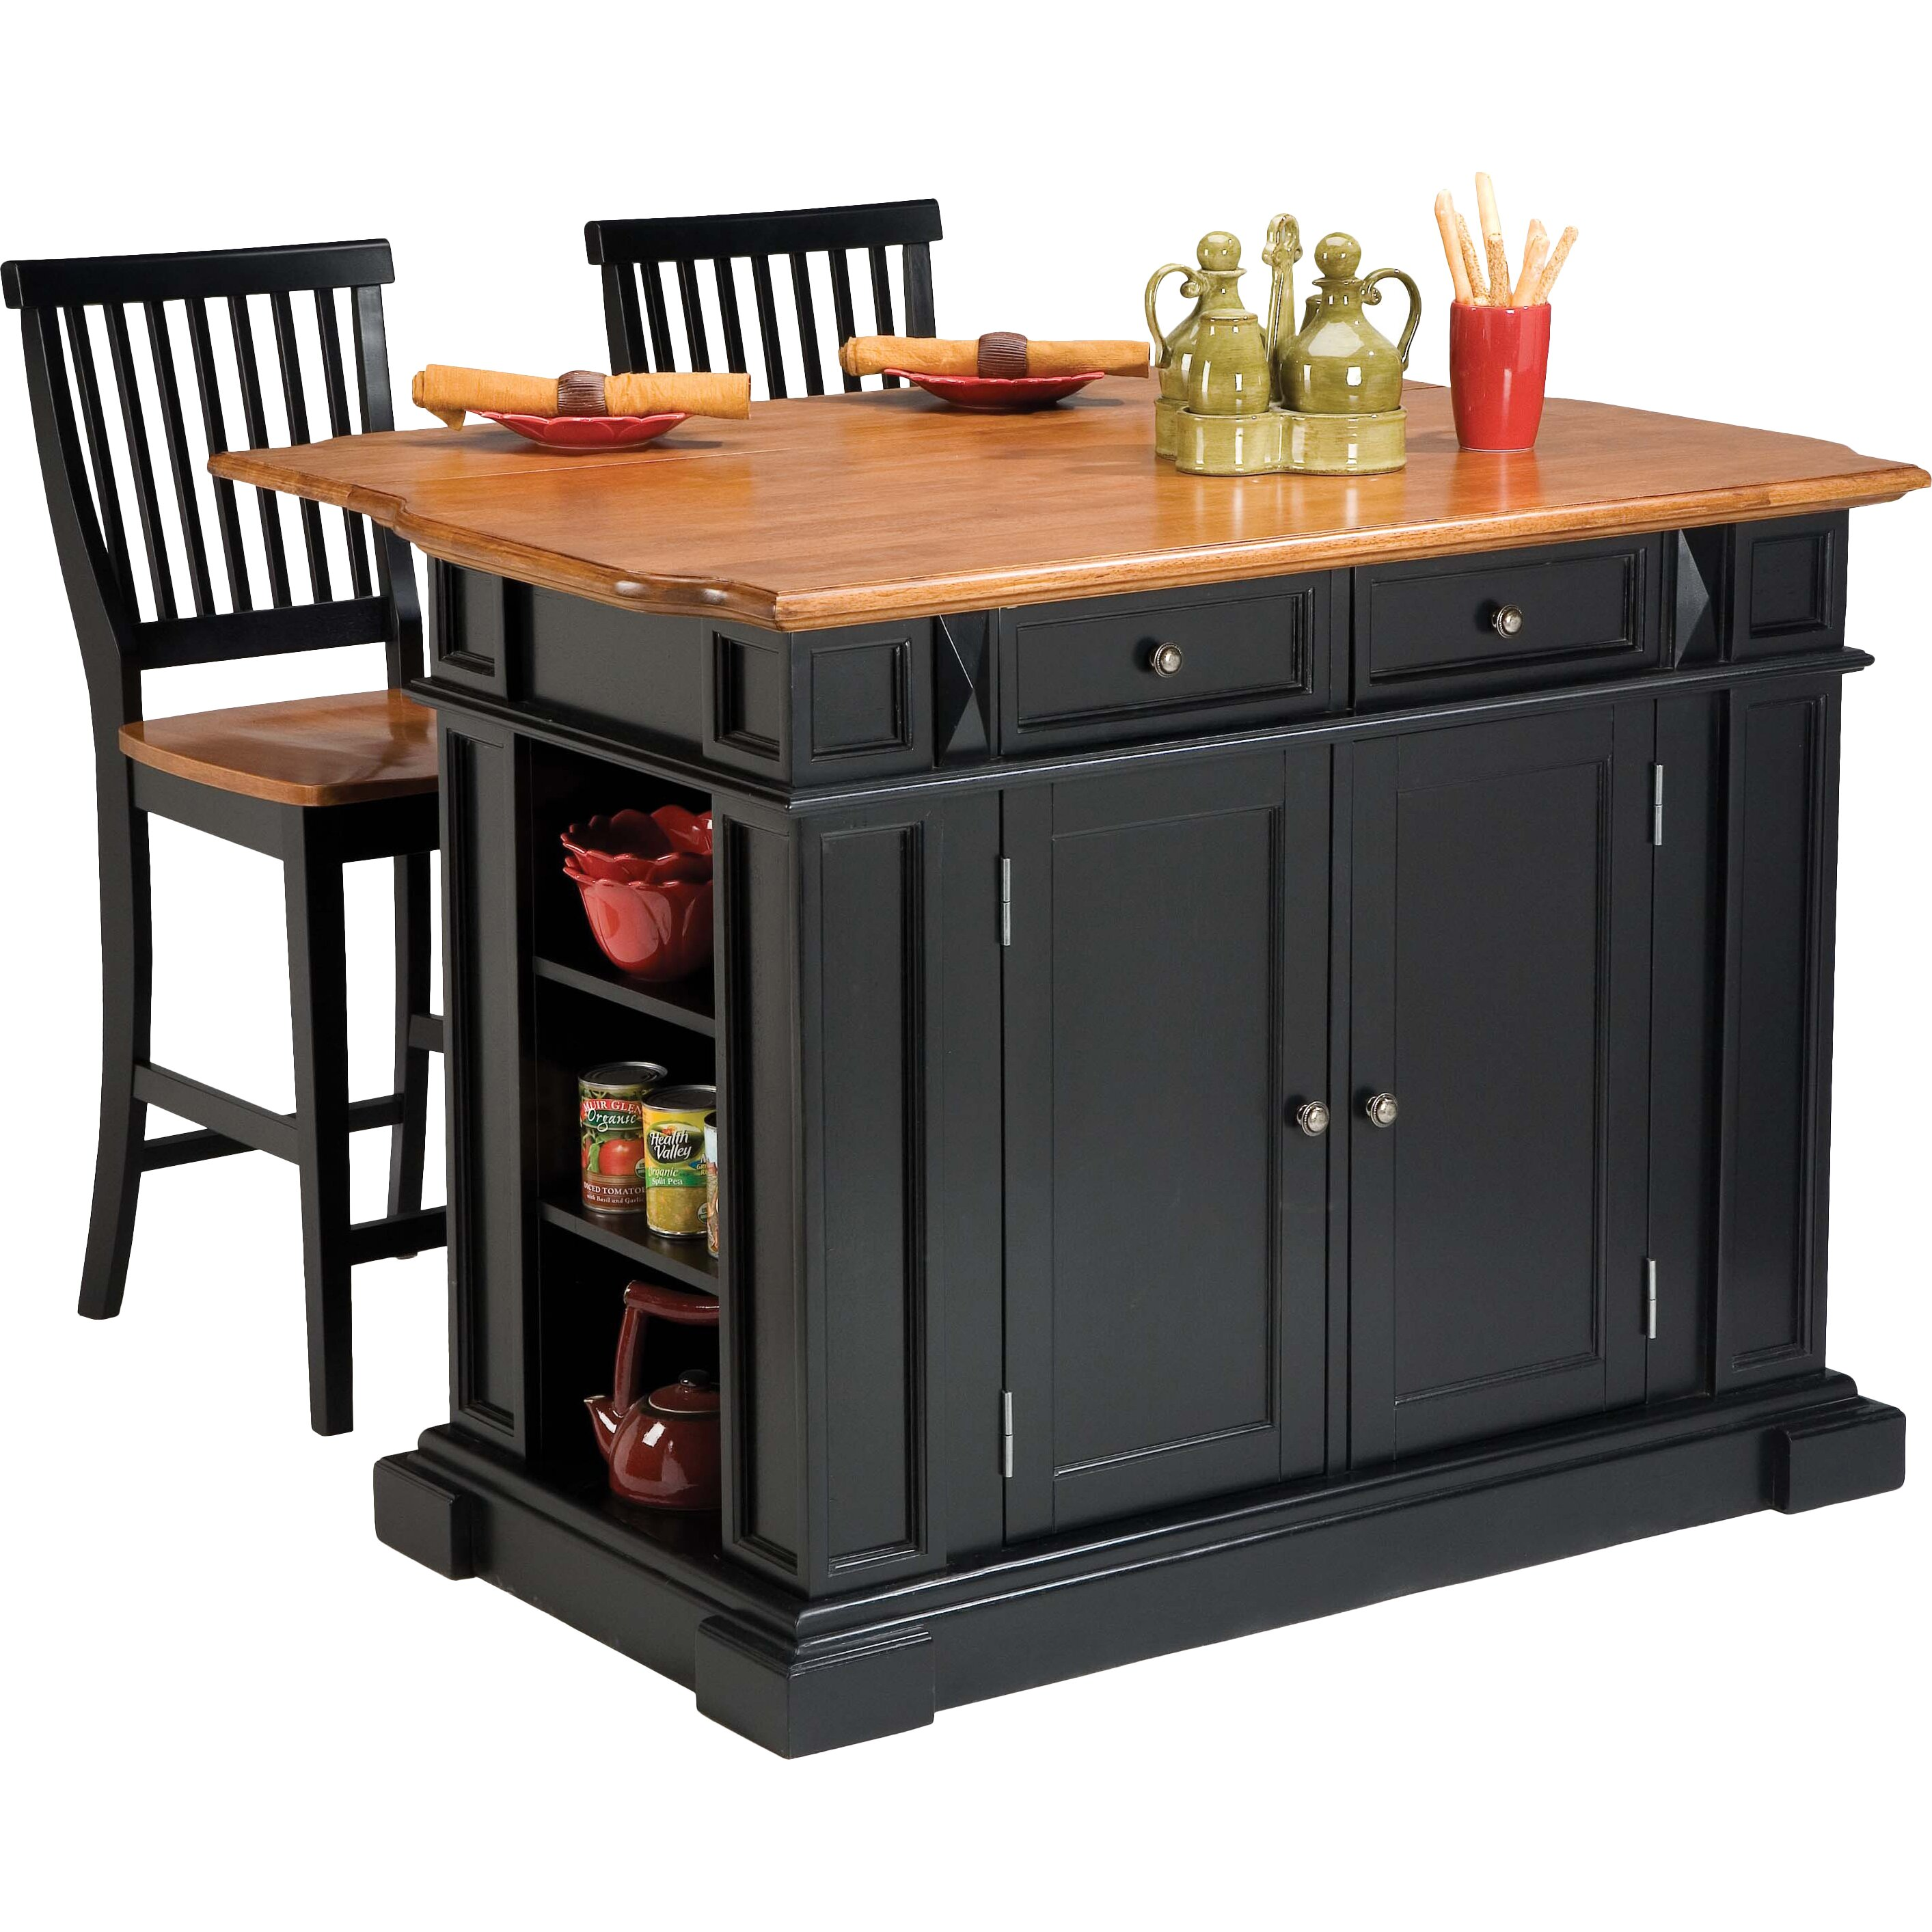 darby home co mattice 3 kitchen island set reviews